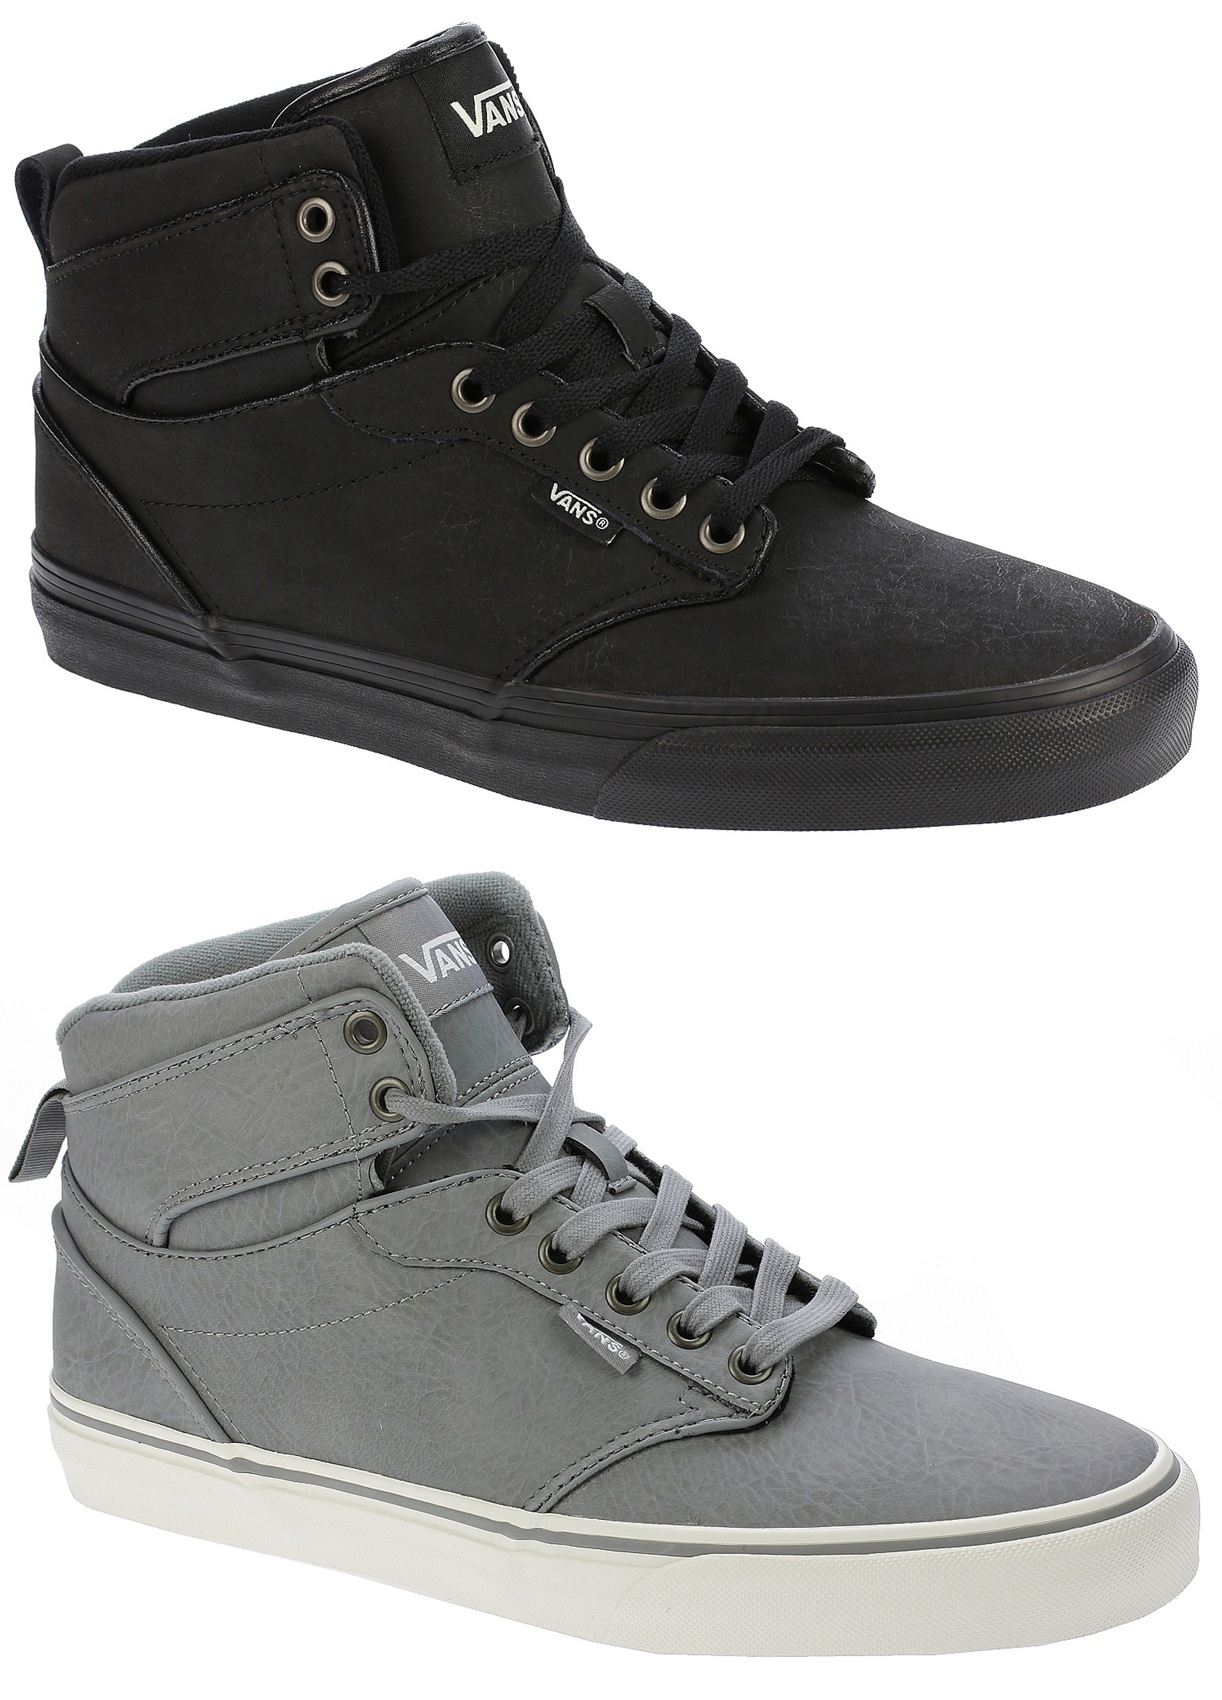 cab32f2f1d96d3 Sentinel Vans Skate Shoes - Atwood Hi - (Leather) Frost Grey Marshmellow